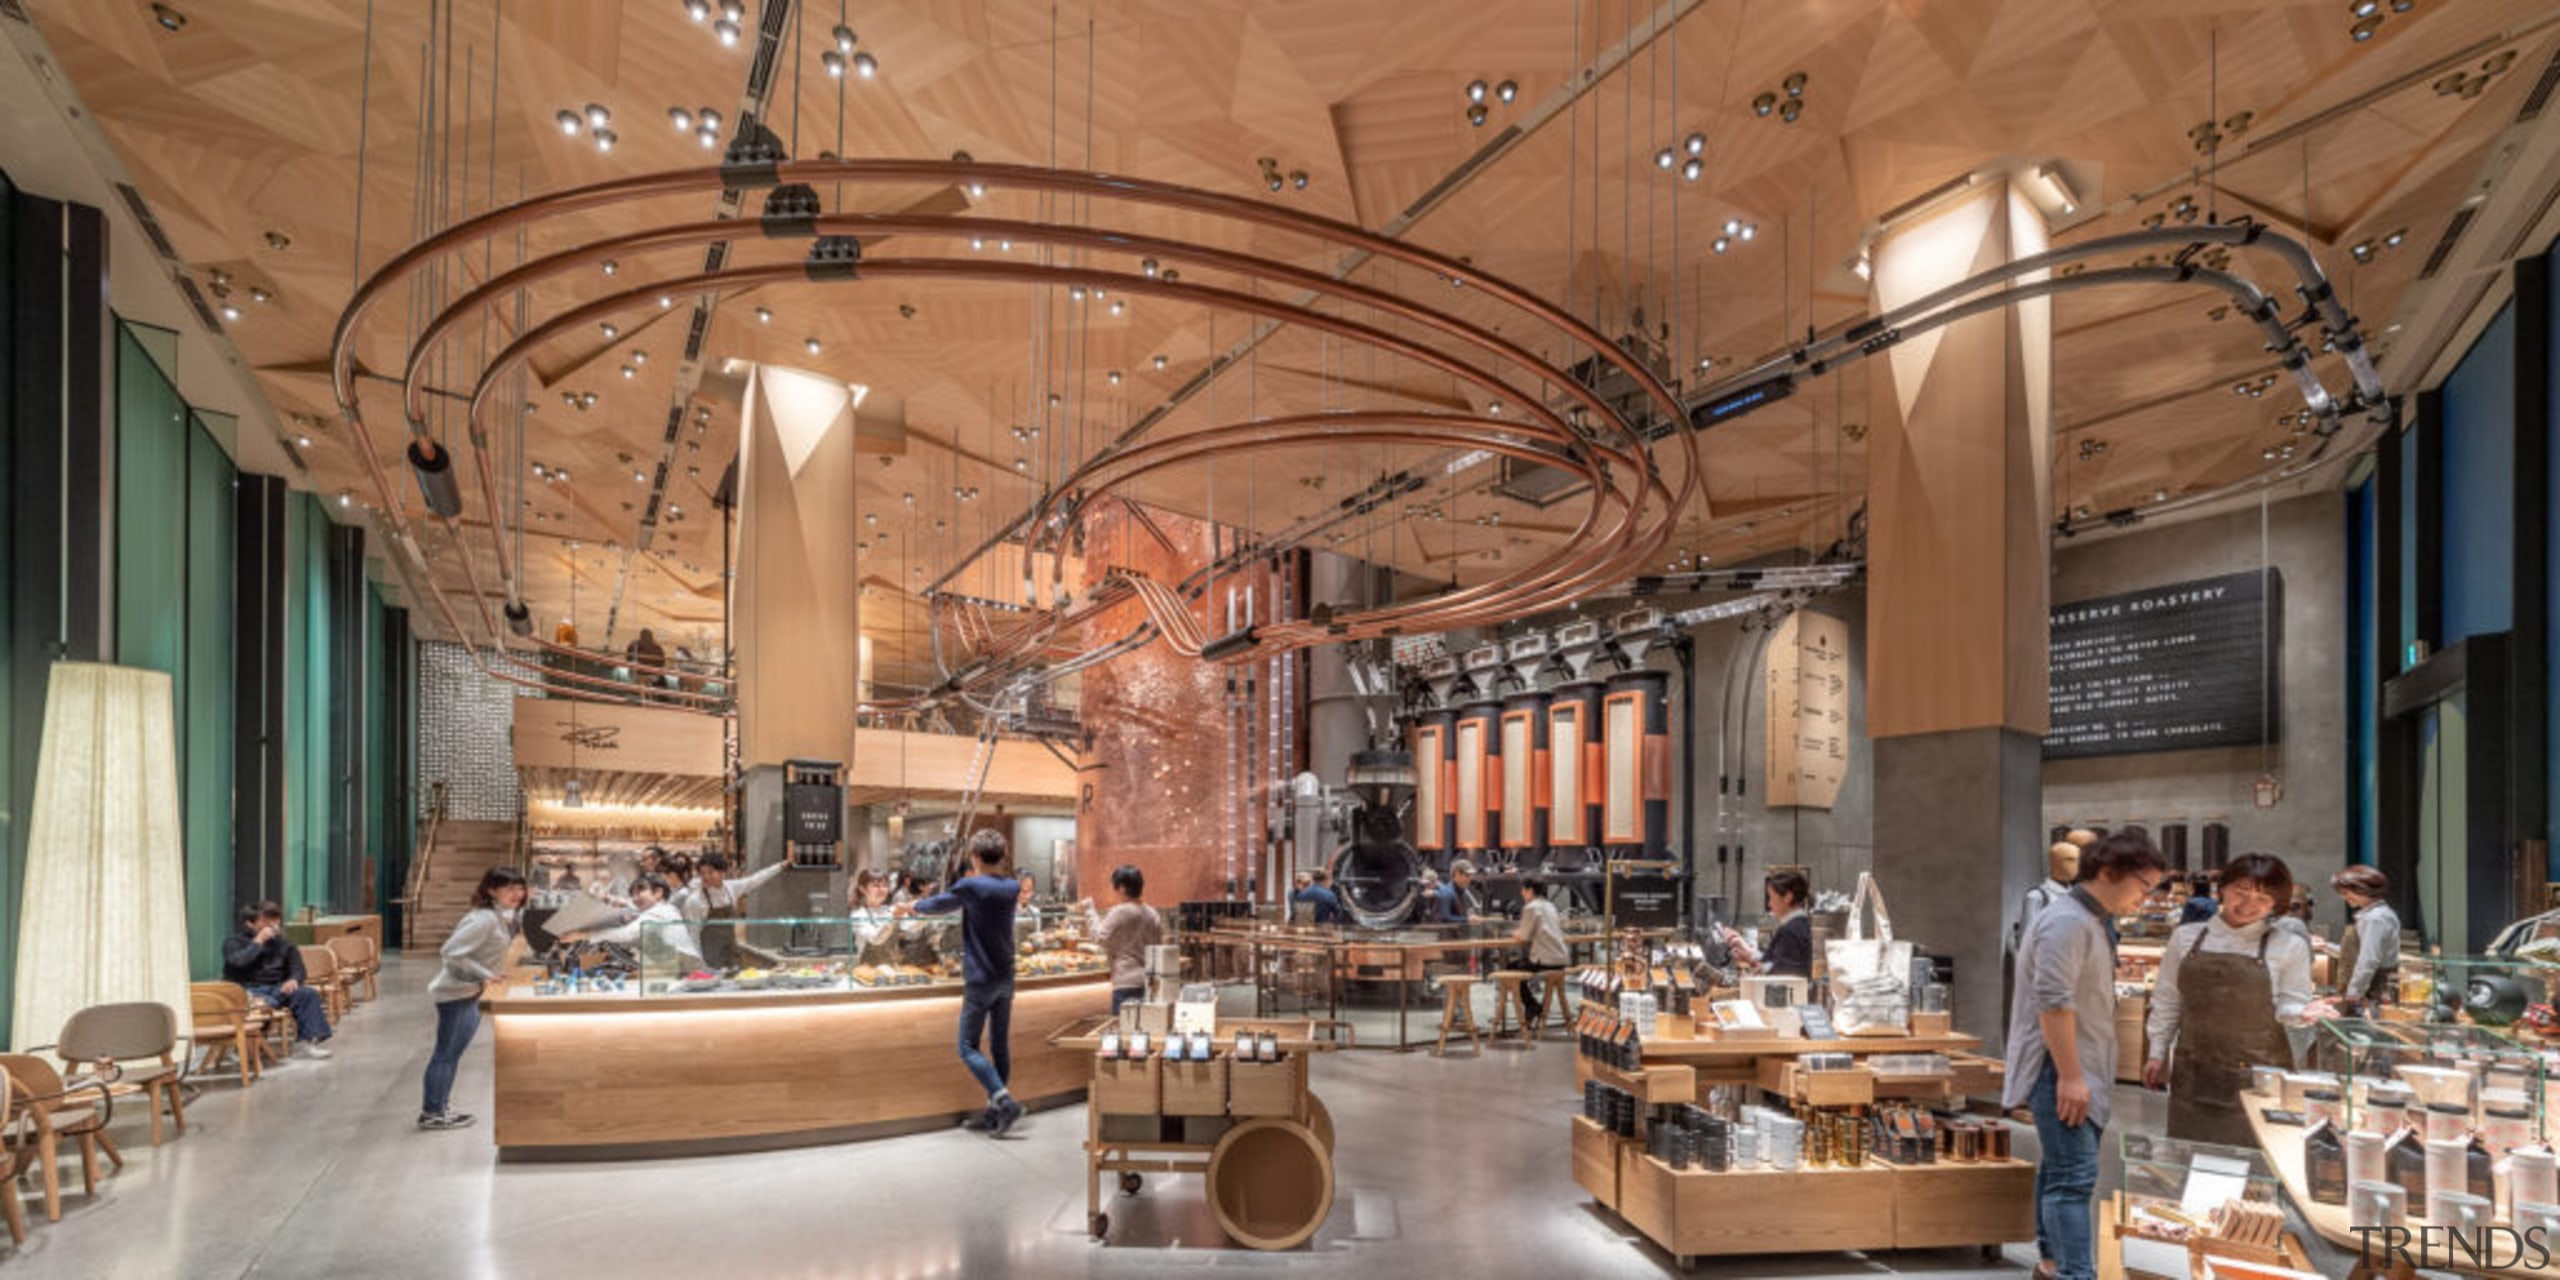 Starbucks Roastery – Tokyo - building | food building, food court, interior design, lobby, brown